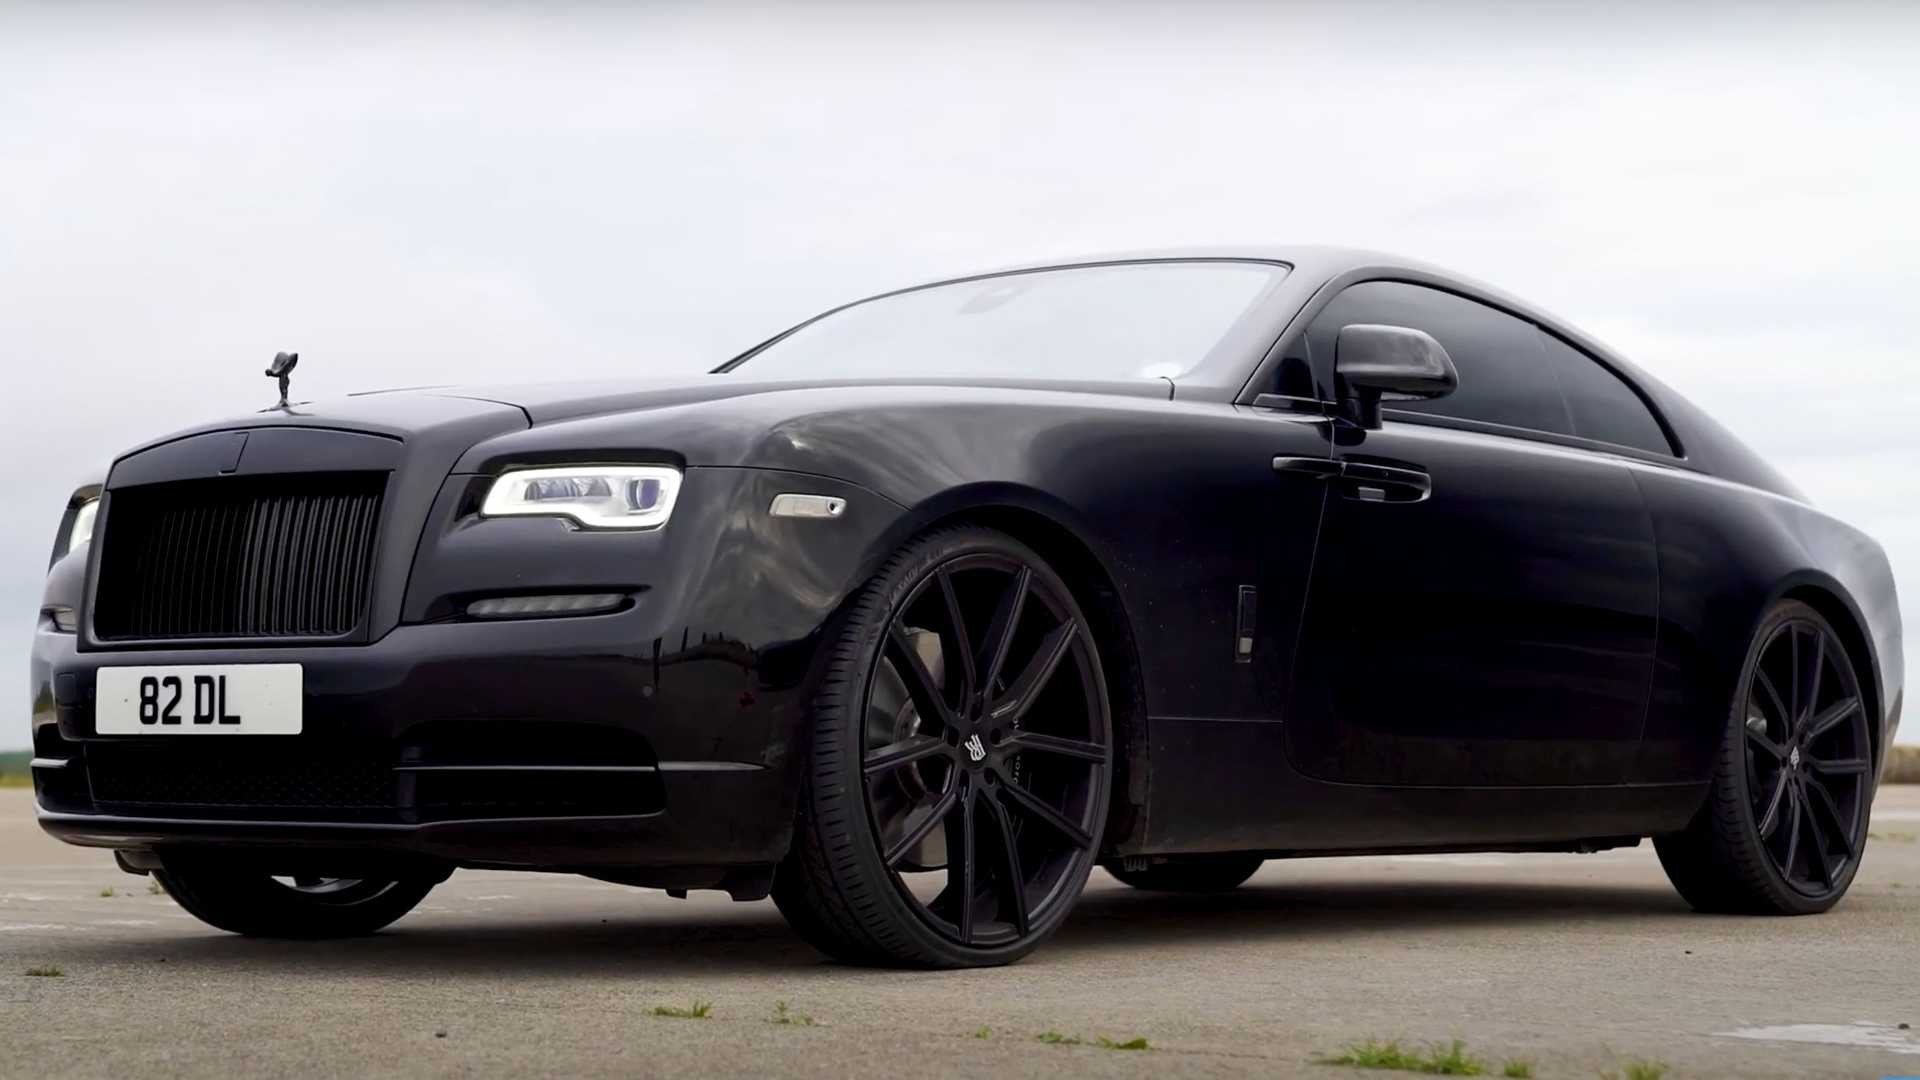 Rolls Royce Wraith And Bentley Continental Gt Drag Race In Battle Of Luxury Titans